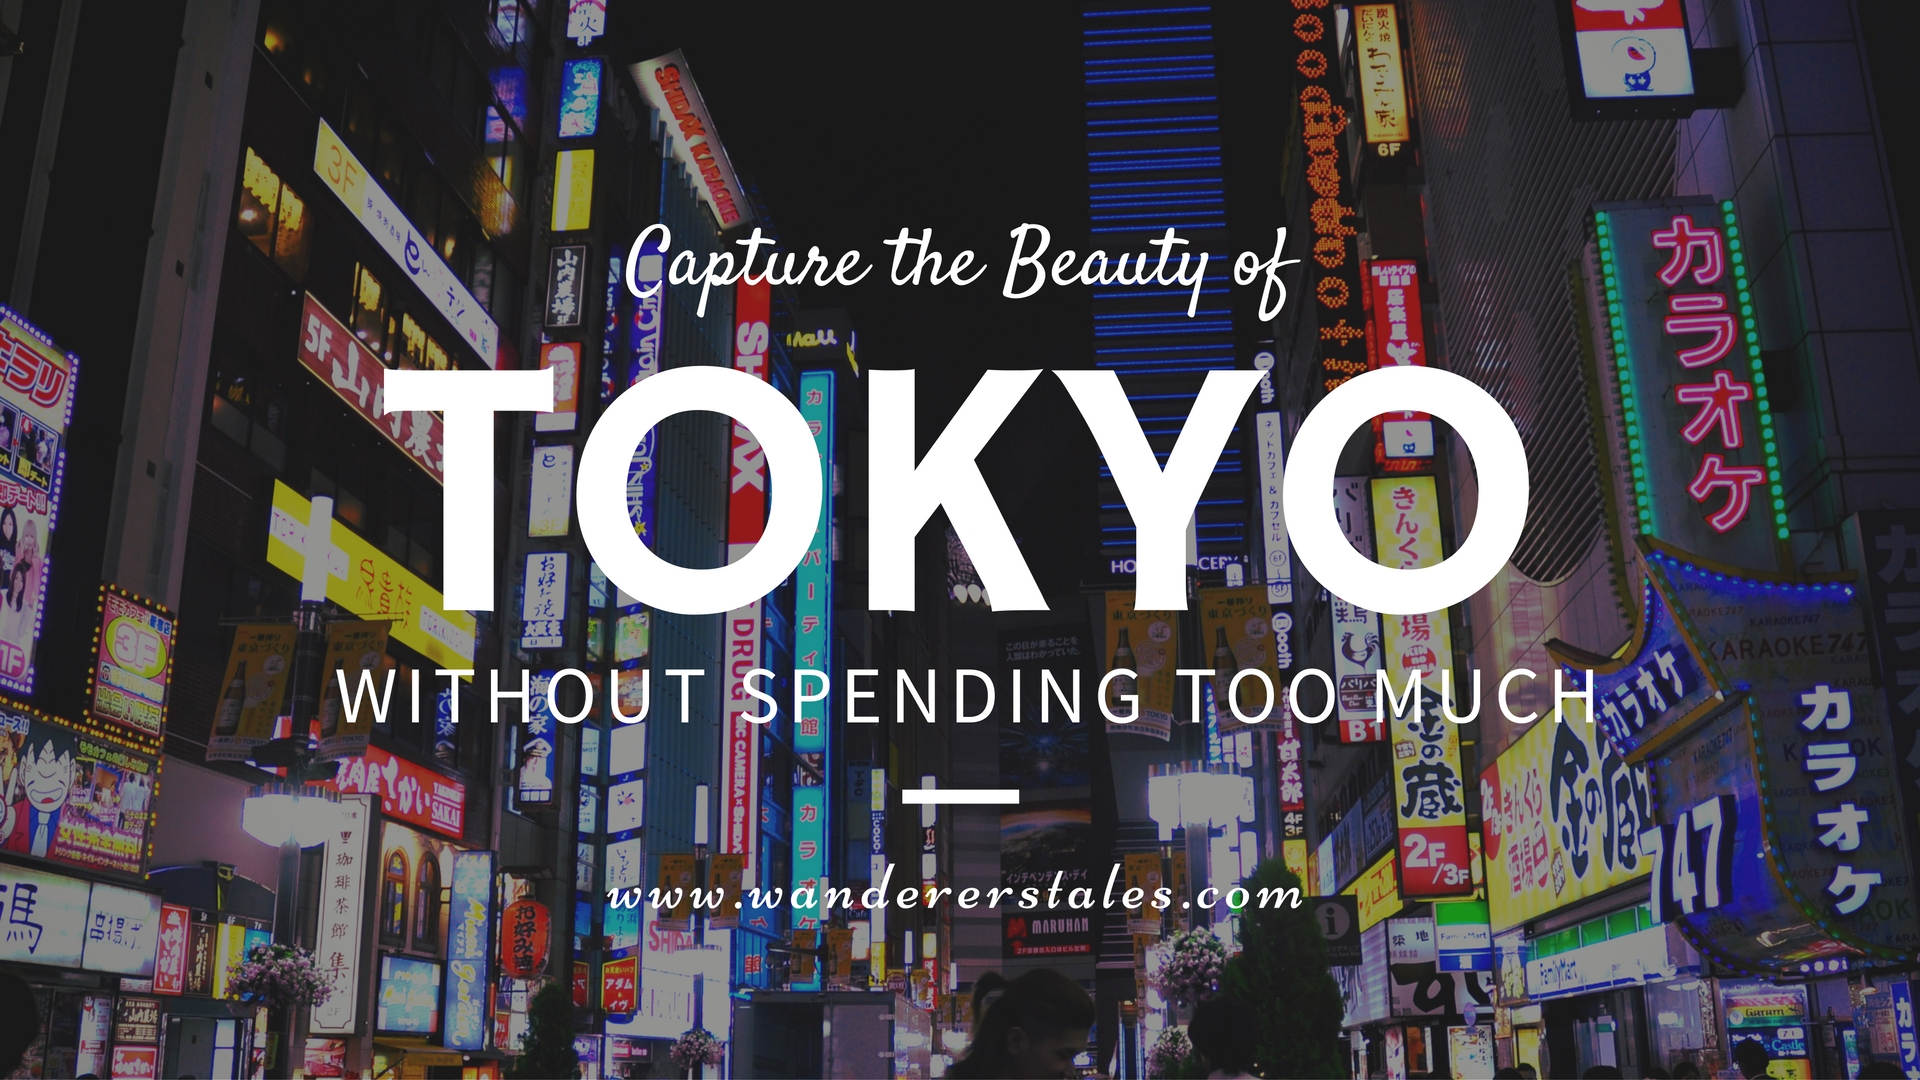 10 Ways to Explore and Capture Stunning Images of Tokyo for Free